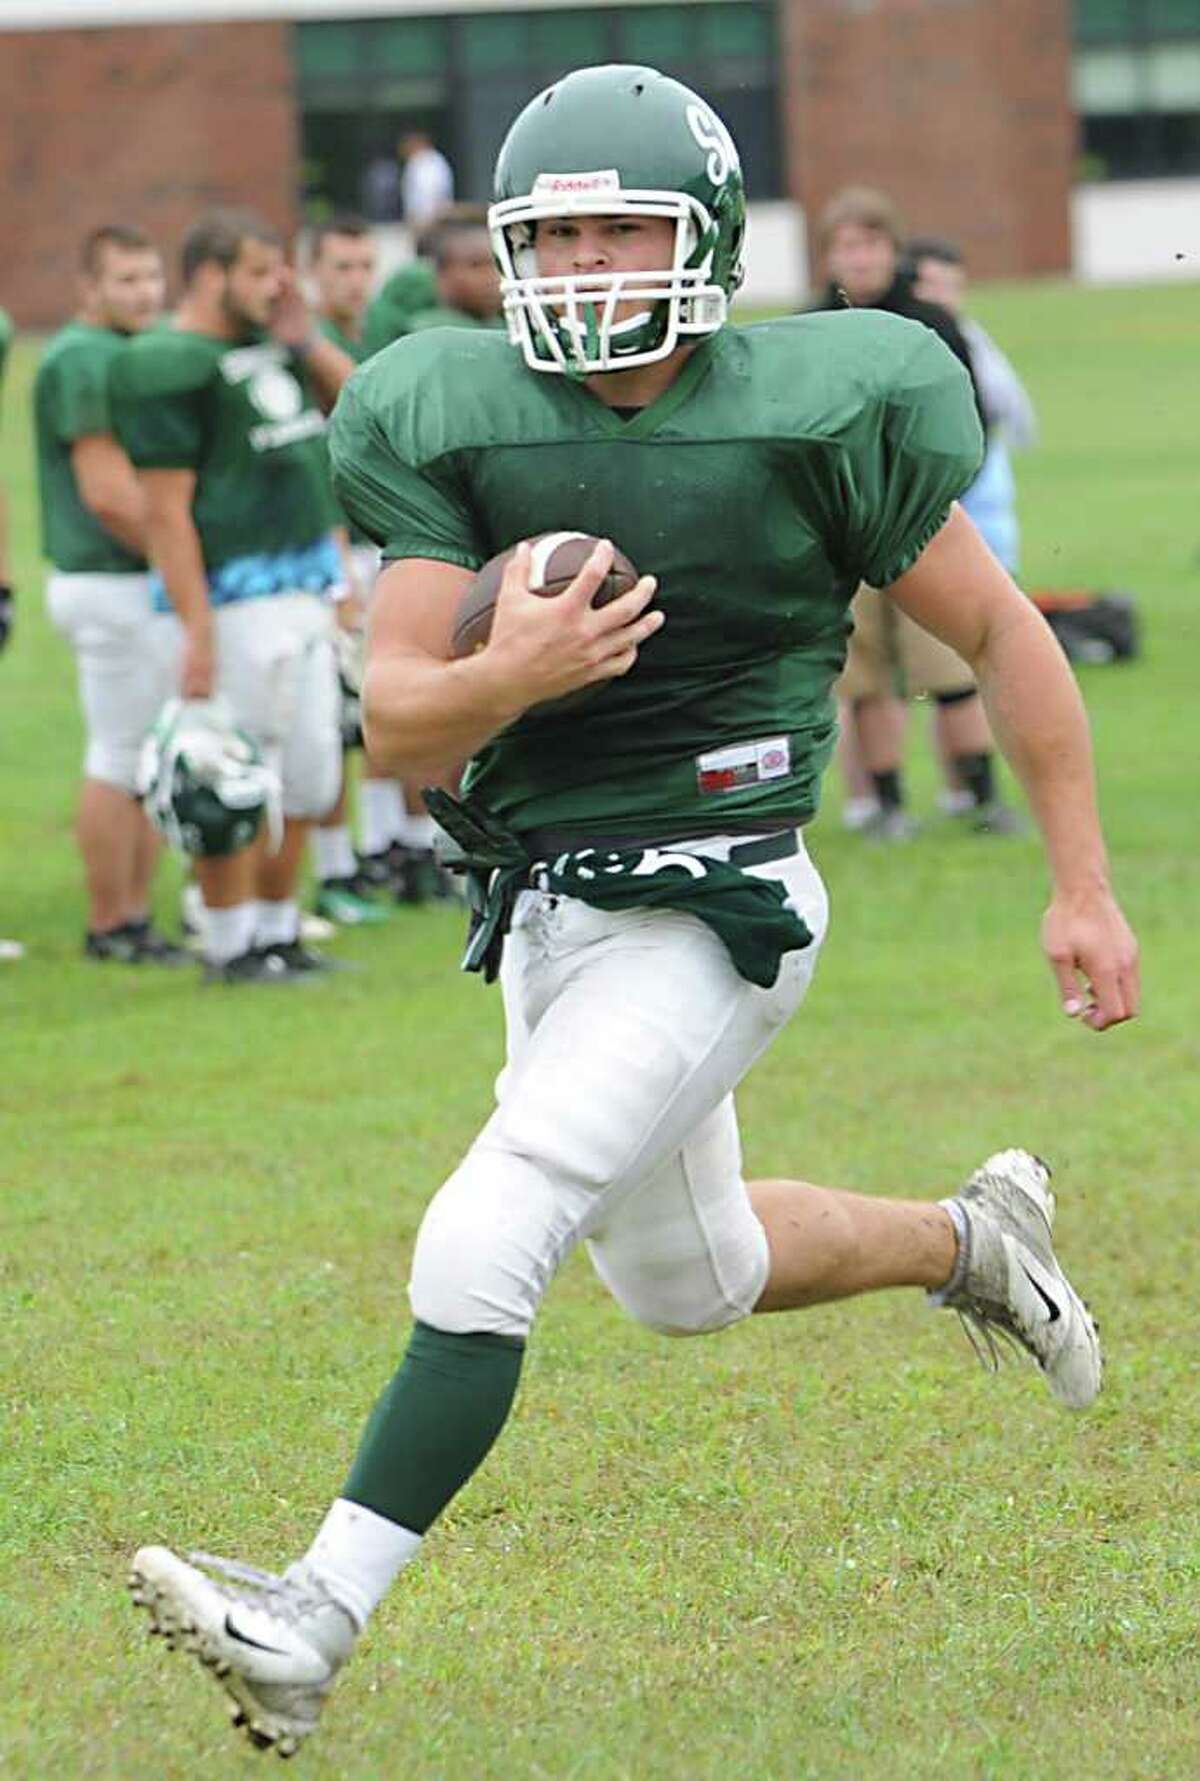 Shenendehowa running back Tony Fusco runs with the ball during practice in Clifton Park, N.Y. on Sept. 7, 2011. (Lori Van Buren / Times Union)